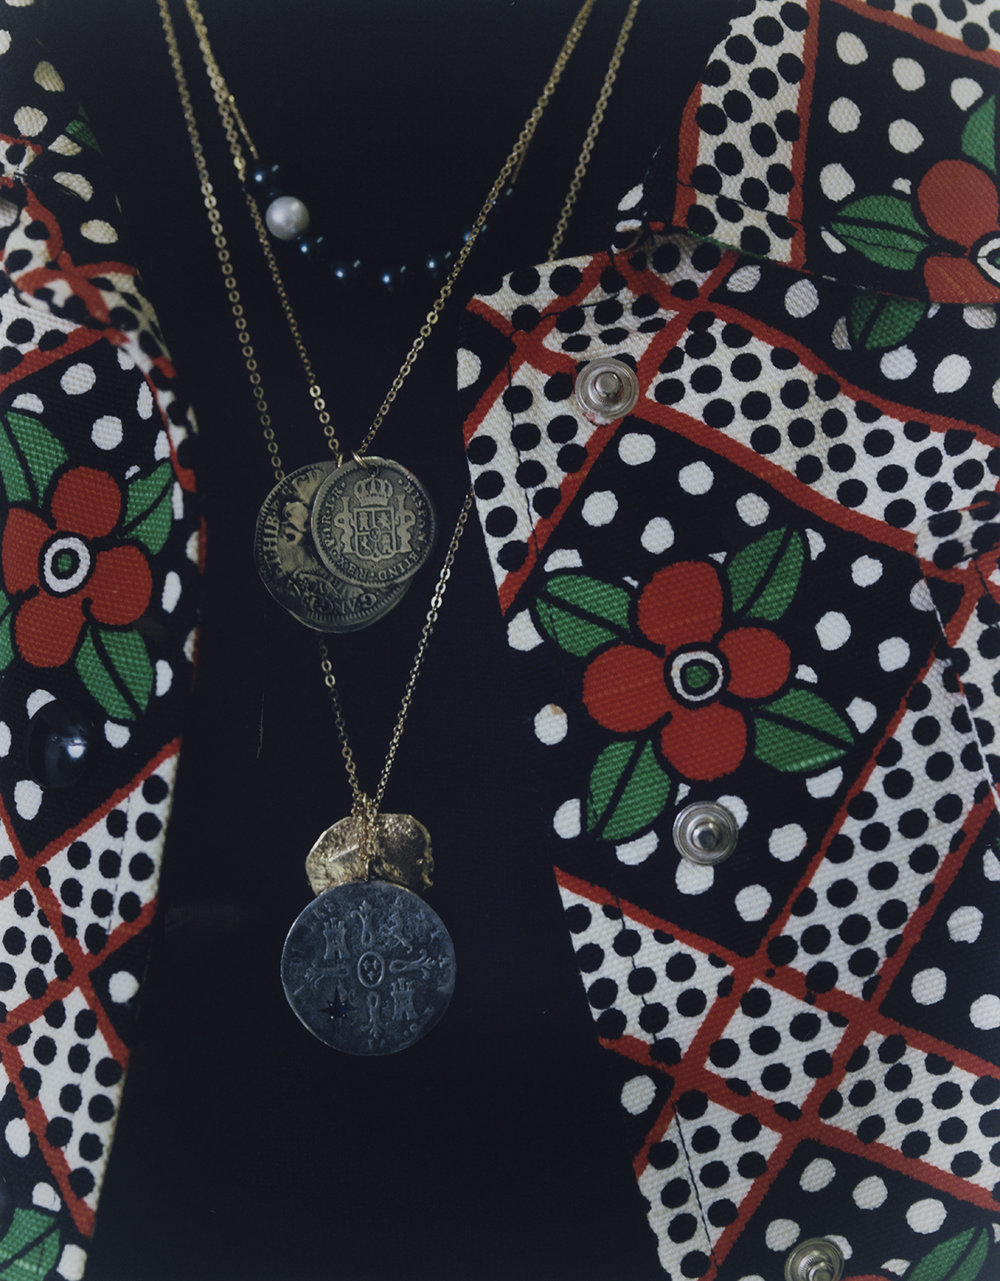 Coin necklace with midnight blue sapphire, and two coin set necklace both LAURA LEE JEWELLERY, black and white pearls necklace SWEETPEA JEWELLERY, floral printed jacket FRANCO JACASSI VINTAGE DELIRIUM, black stitched turtleneck PRADA.